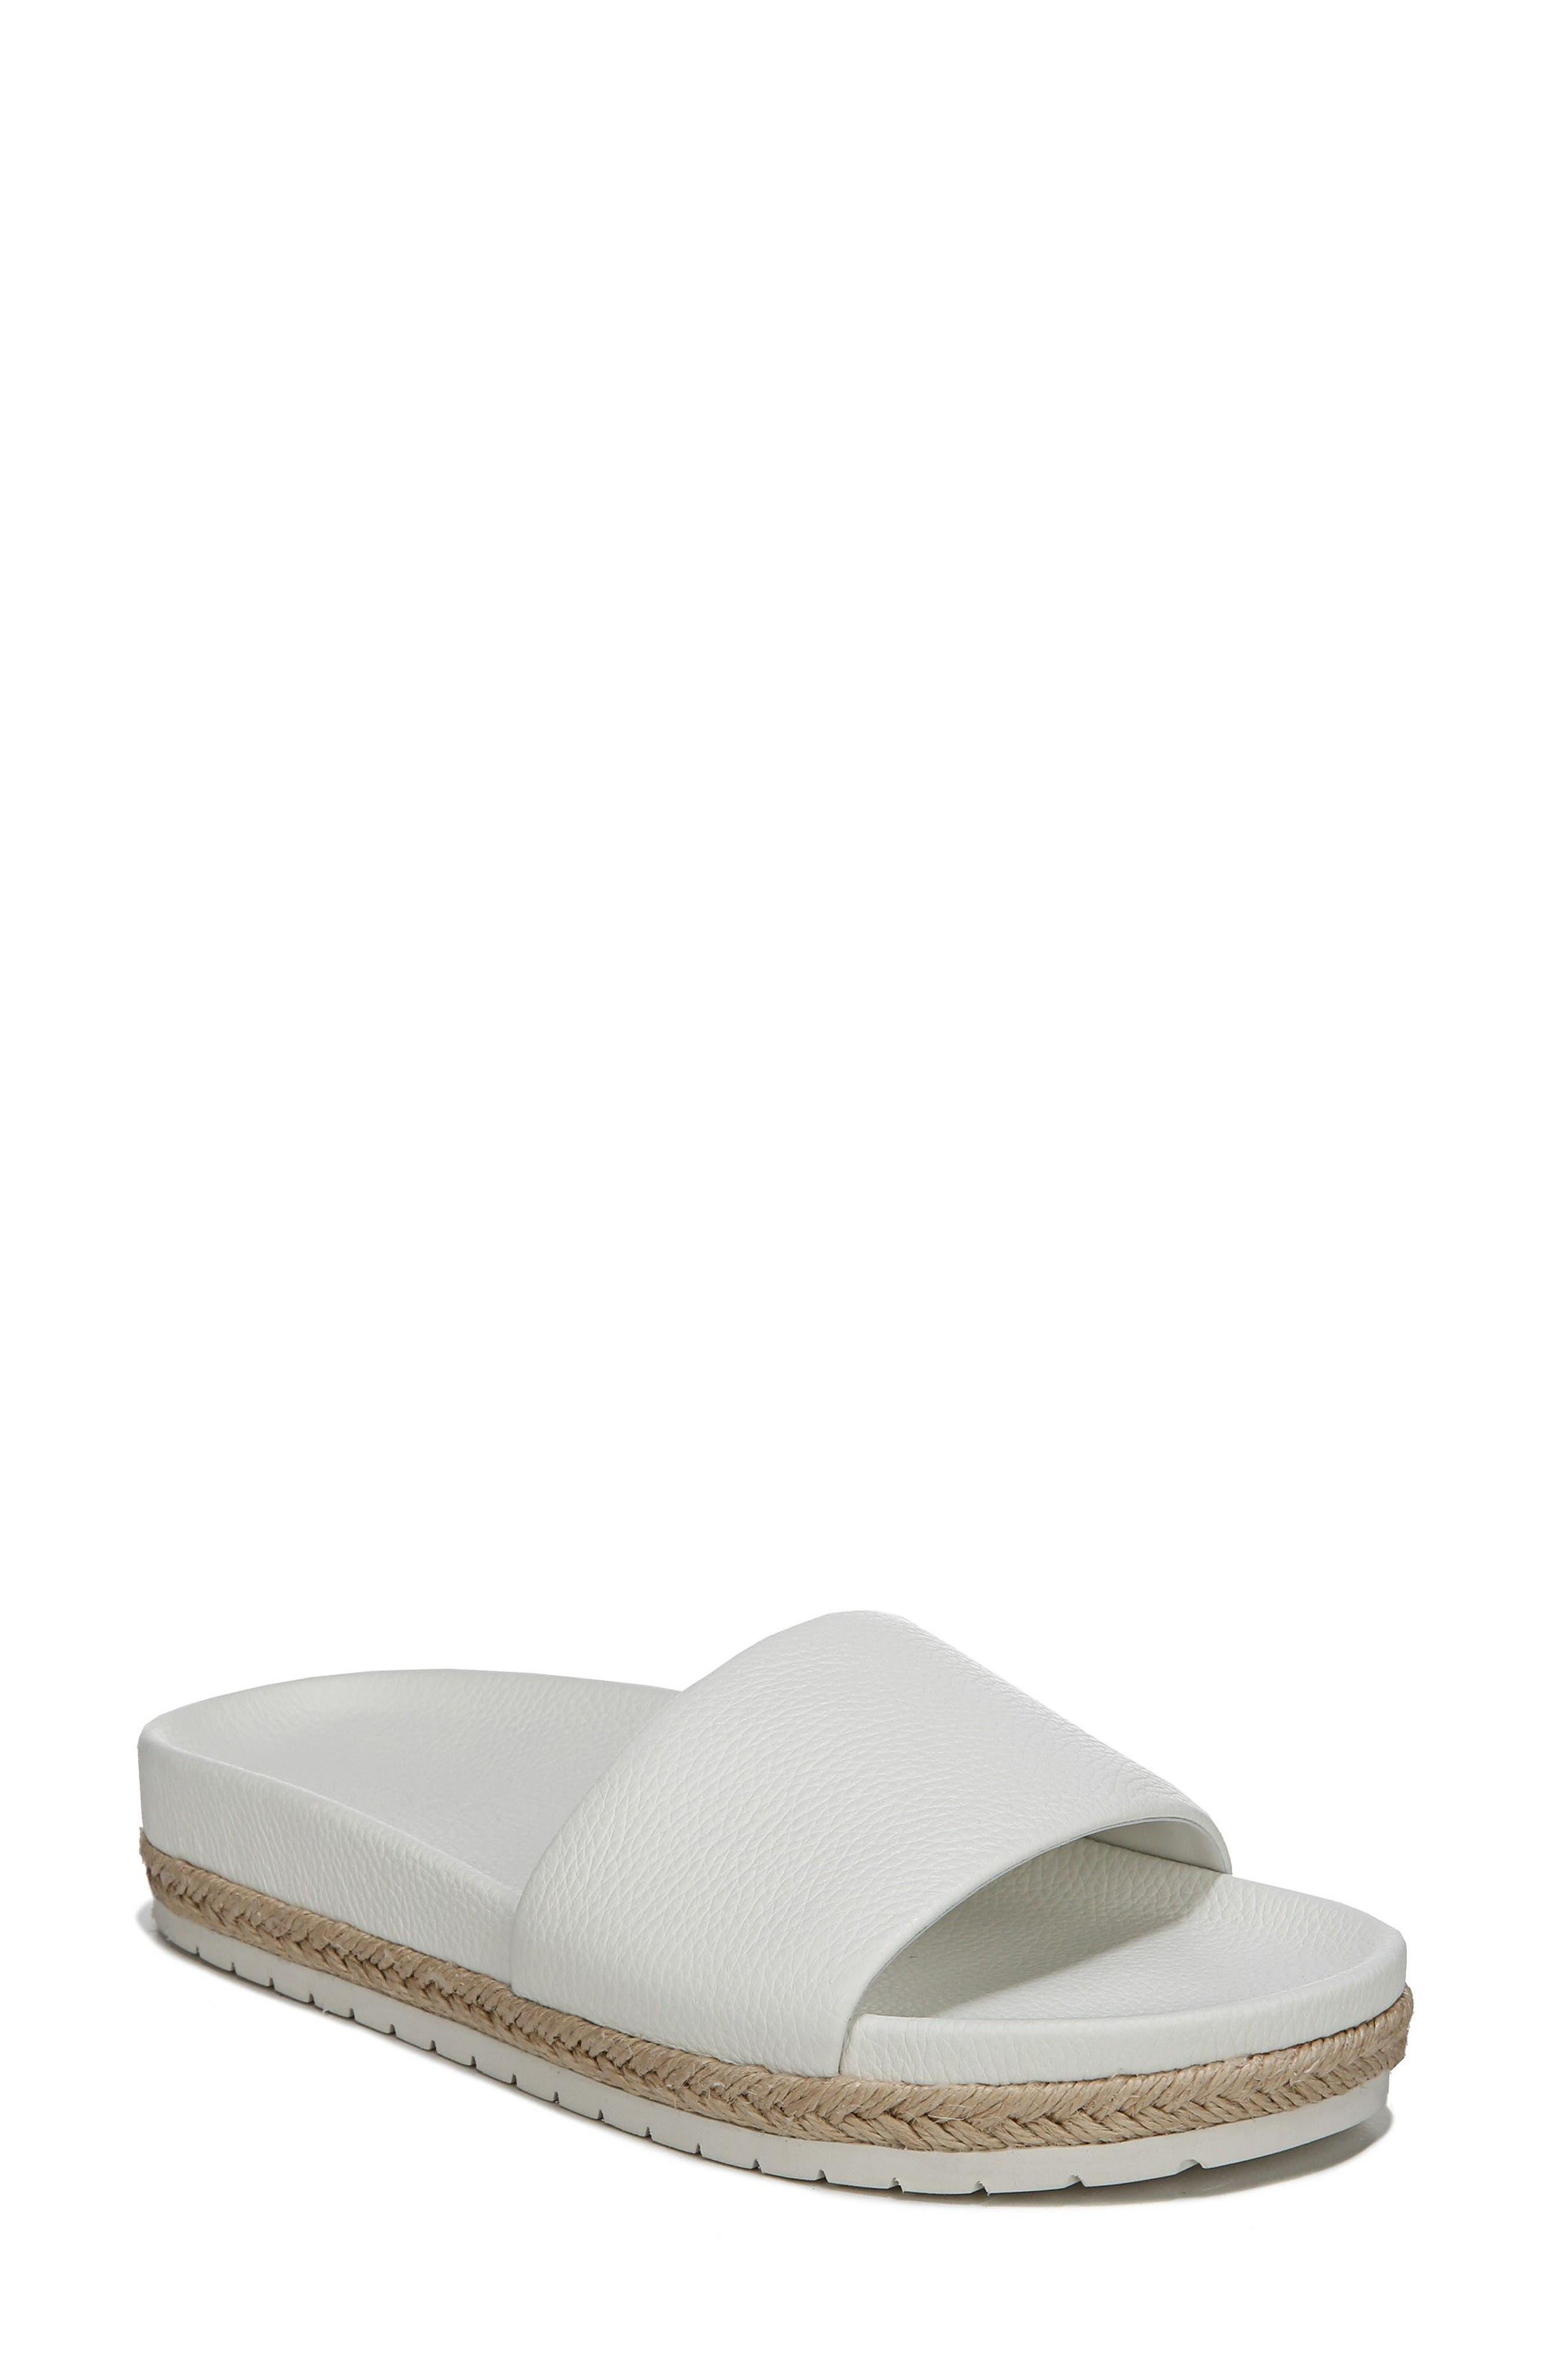 Aurelia Slide Sandal,                         Main,                         color, Panna Cotta